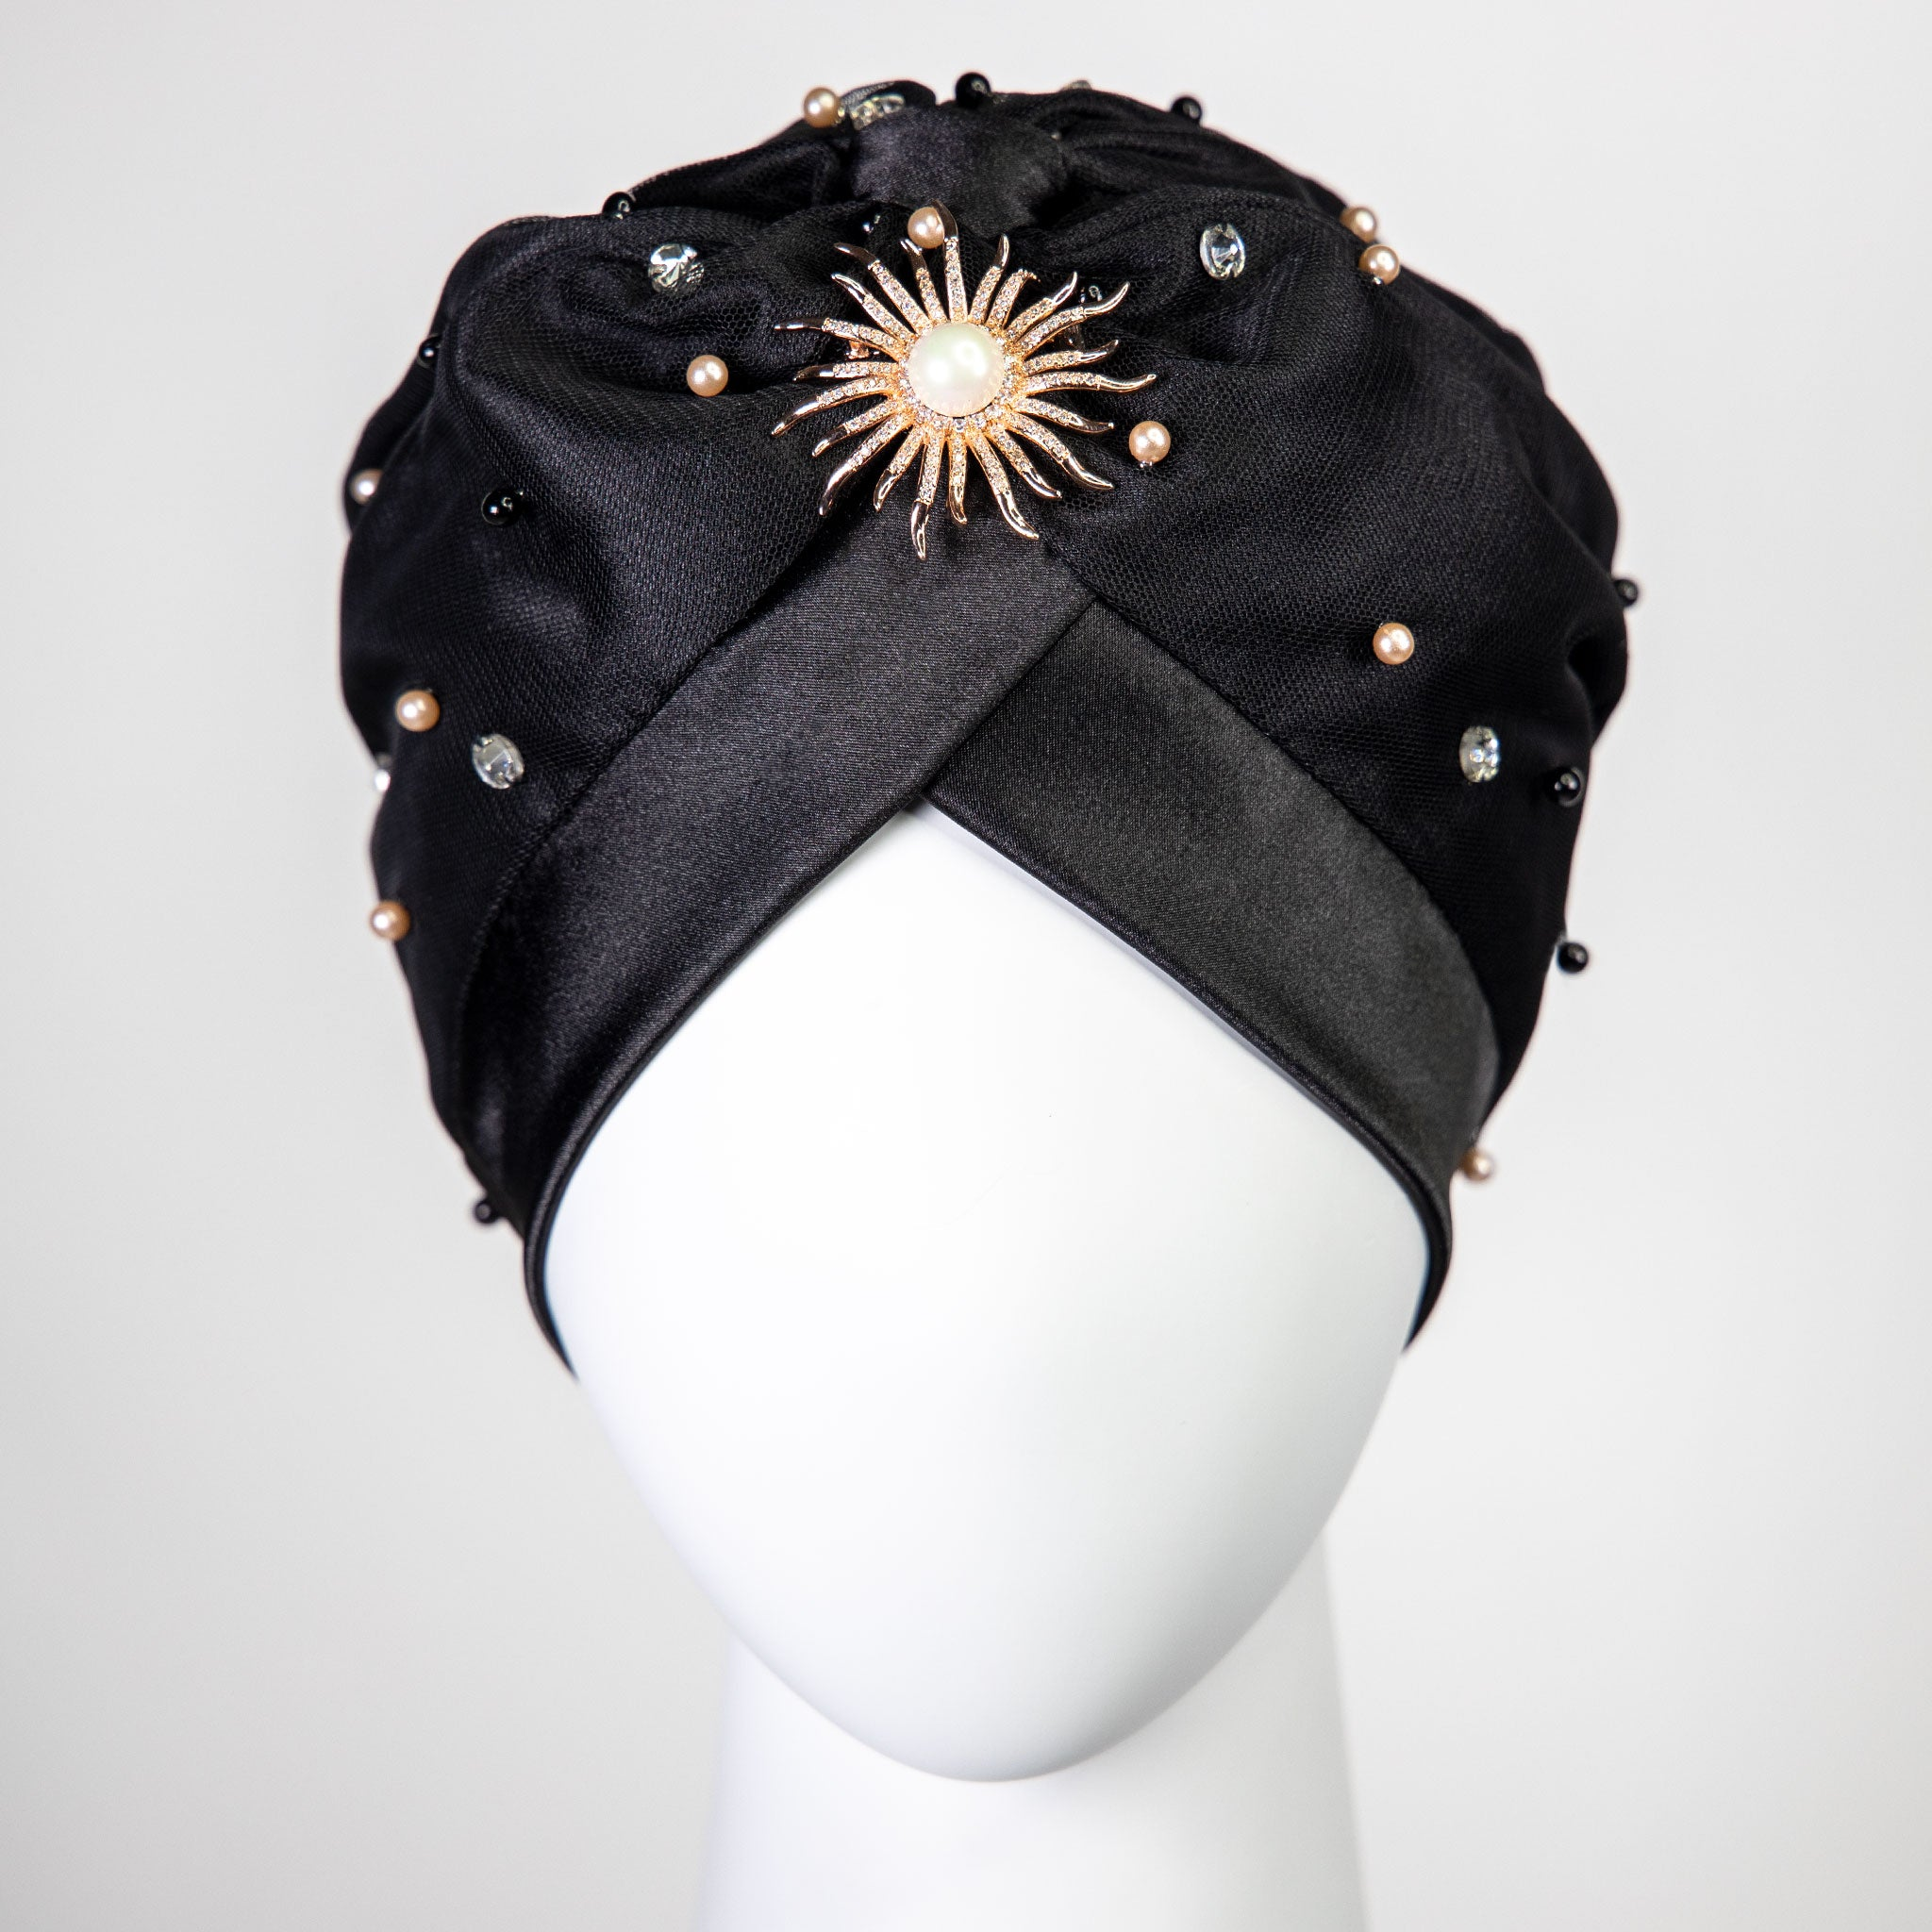 Lola | Pearl & Crystal Embellished Turban Headpiece